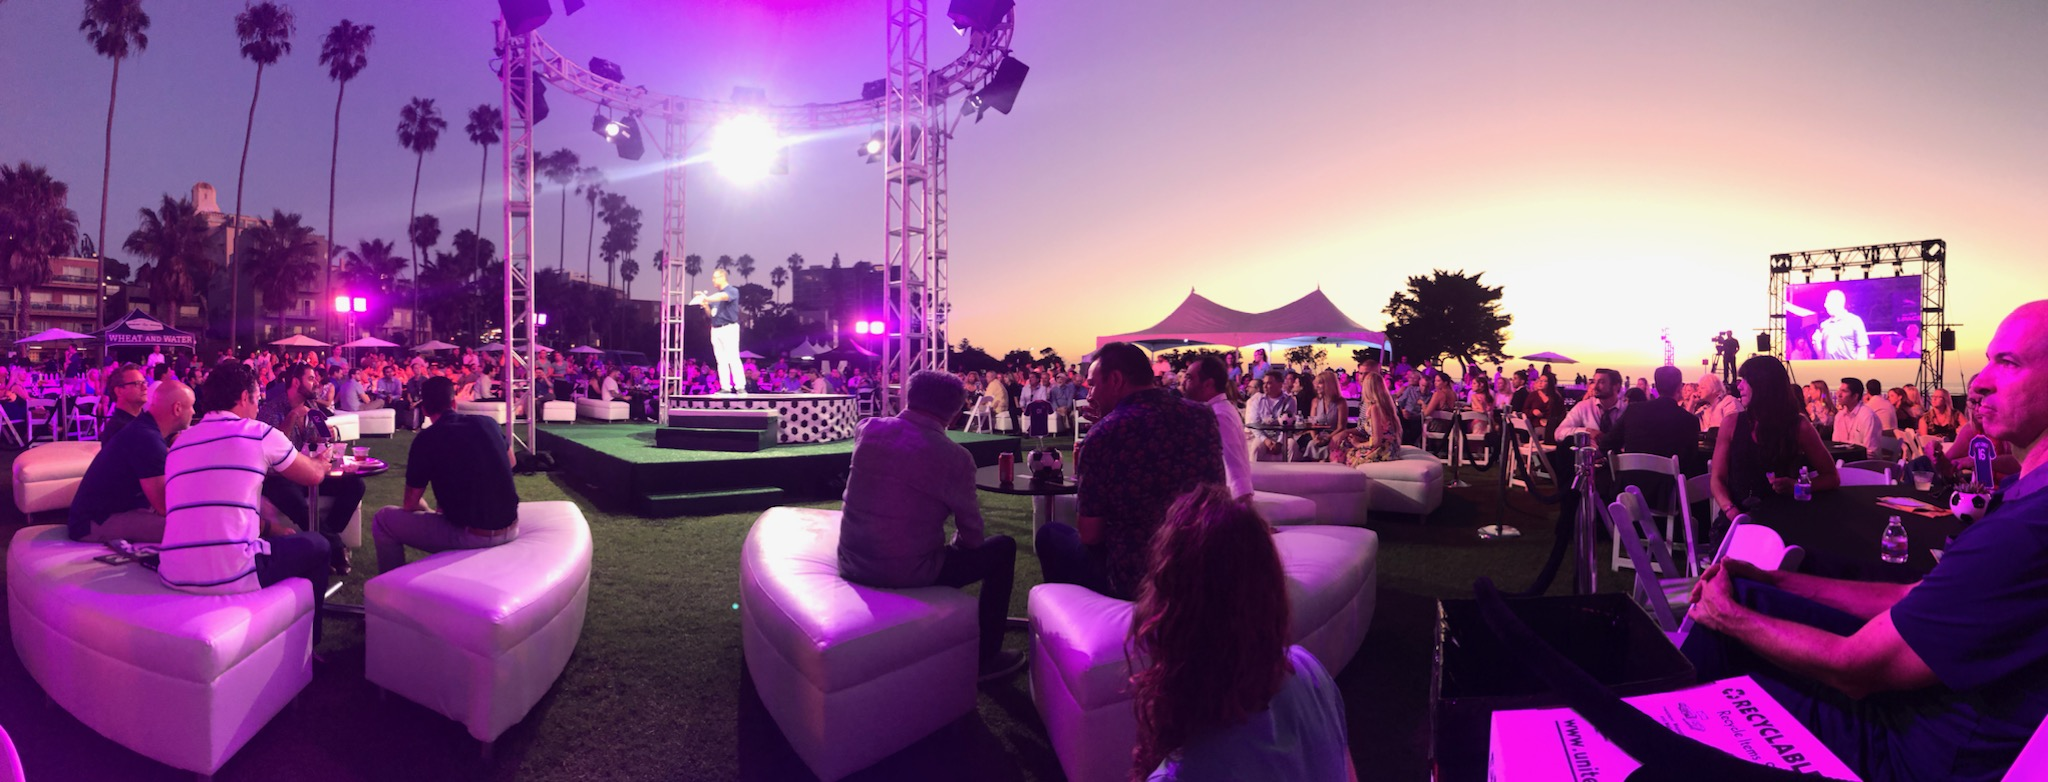 Corporate lighting, audio and video by Pro Systems Event Production 2019 La Jolla, California